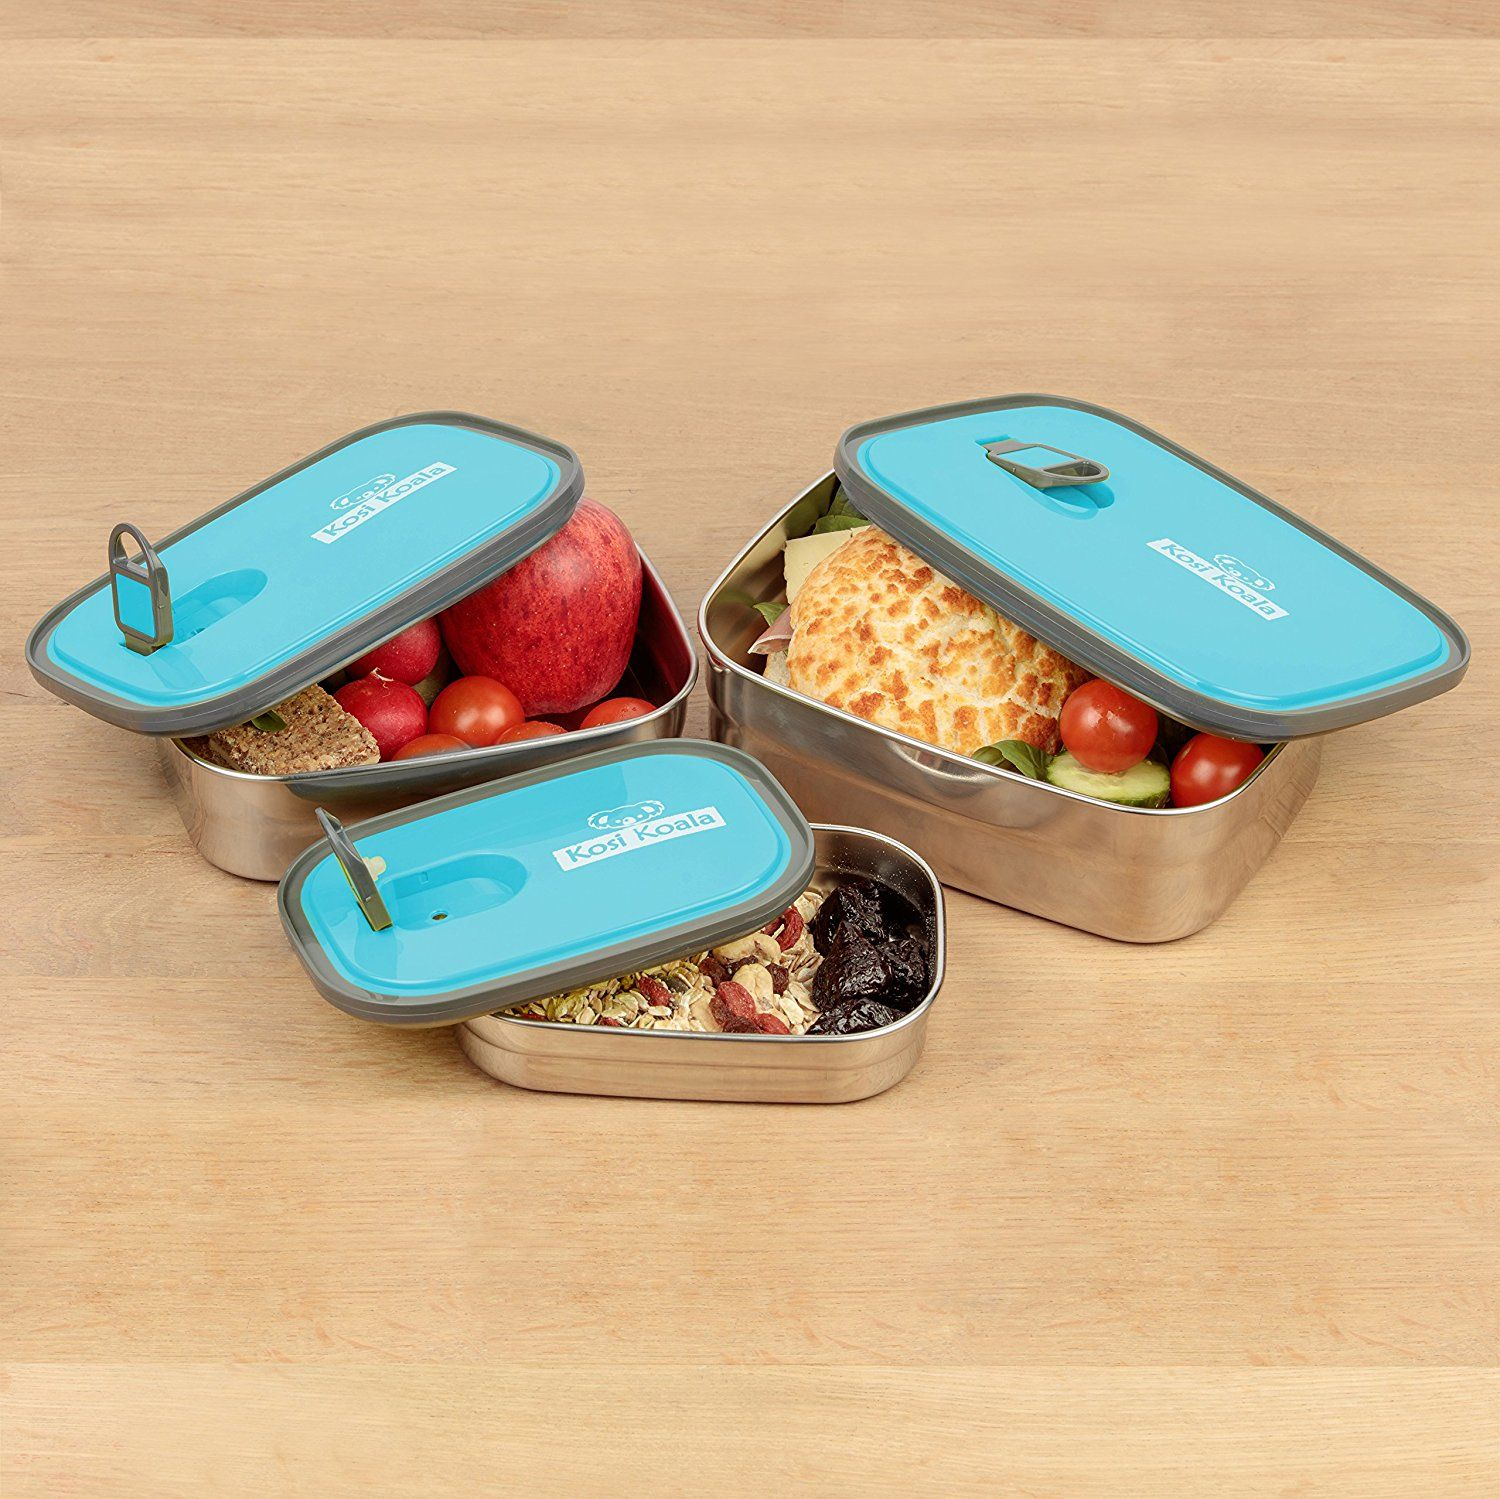 Bento Lunch Box Stainless Steel Food Containers Blue Set Of 3 Best